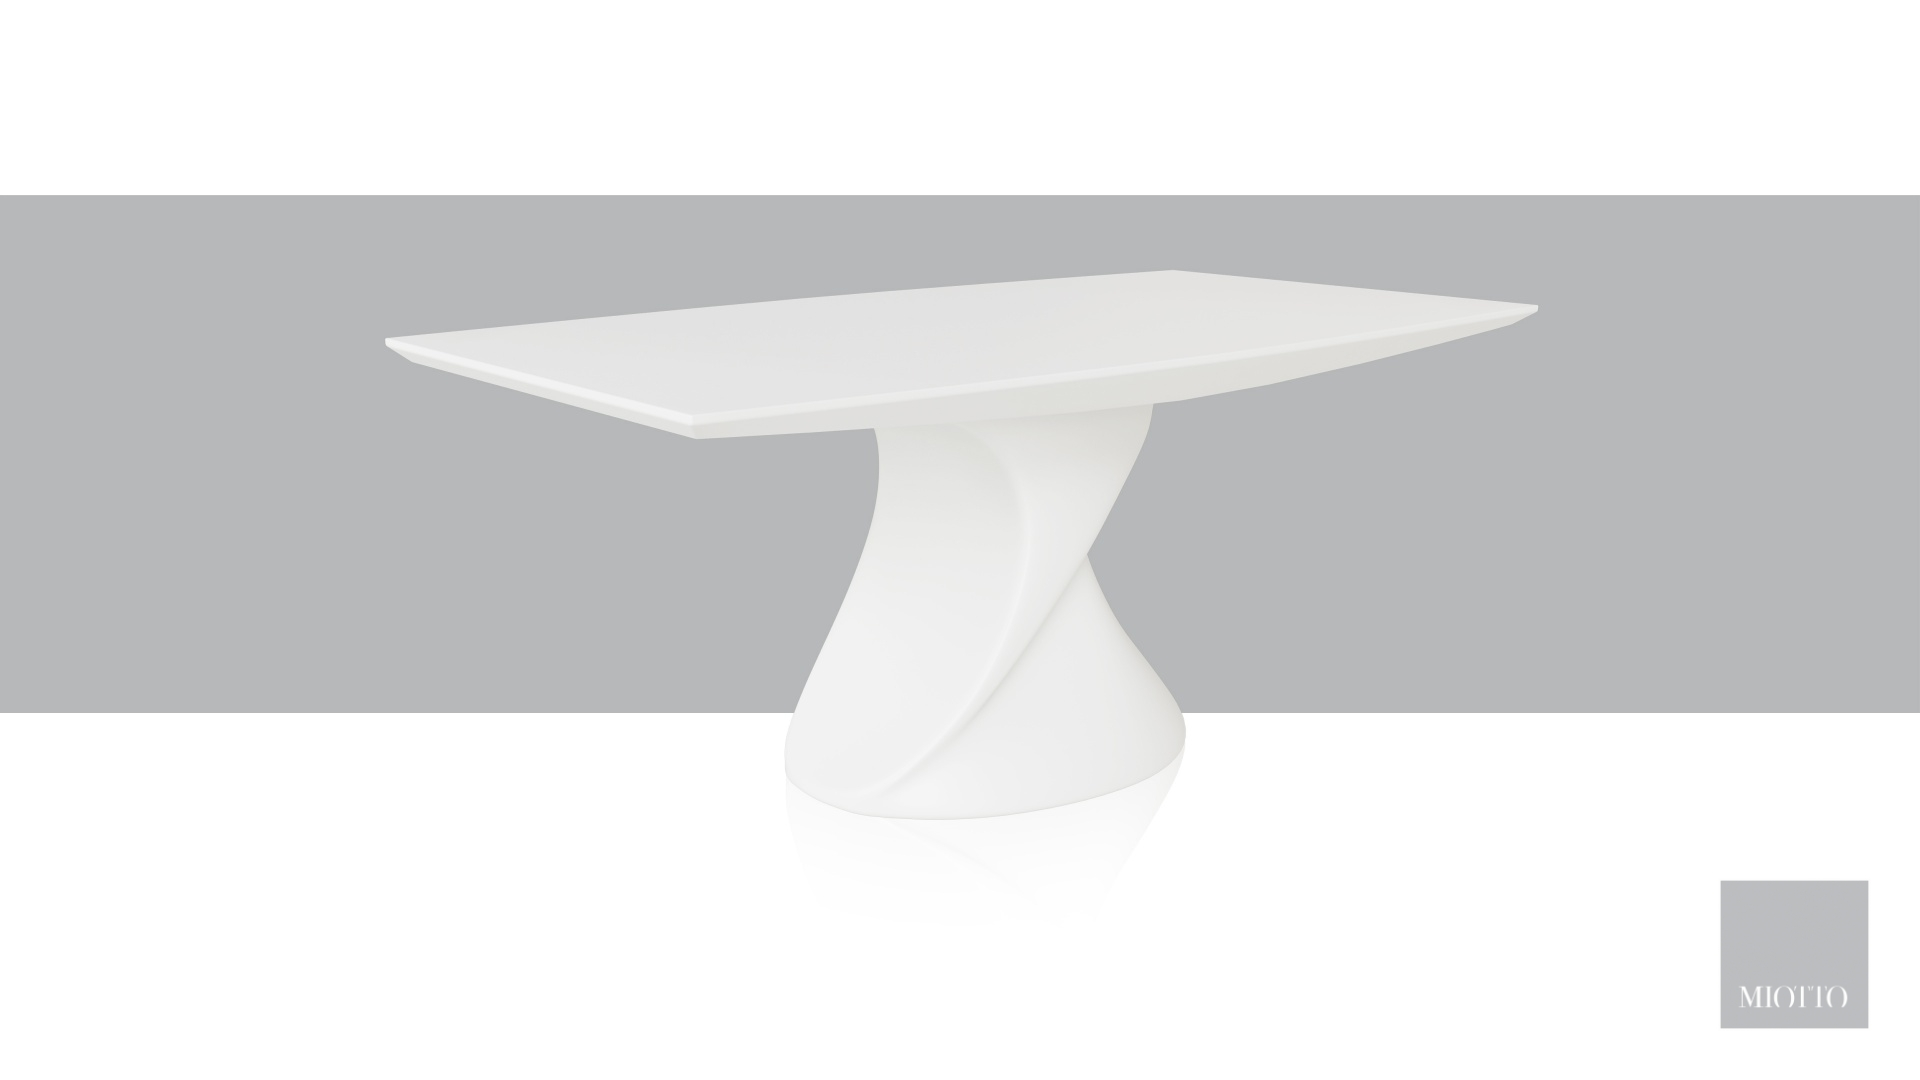 miotto_Bibiana dining table 180 side miotto furniture t